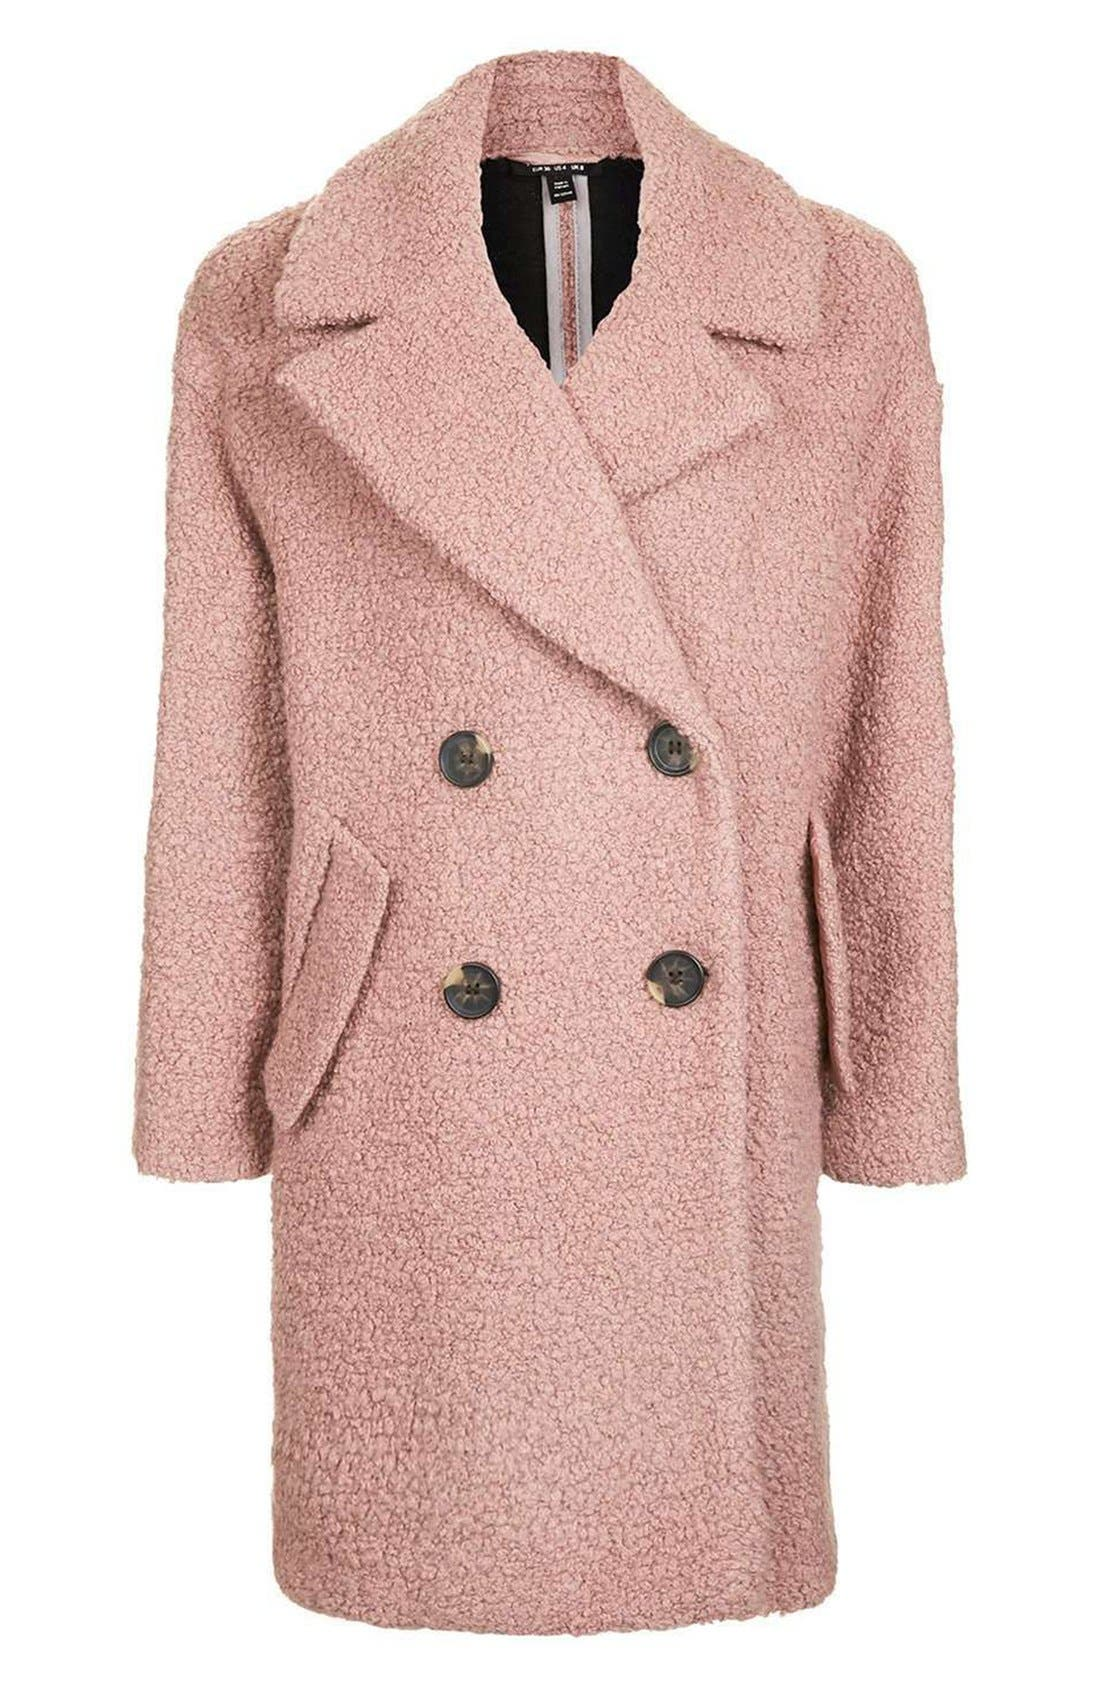 Alicia Bouclé Coat,                             Alternate thumbnail 7, color,                             650